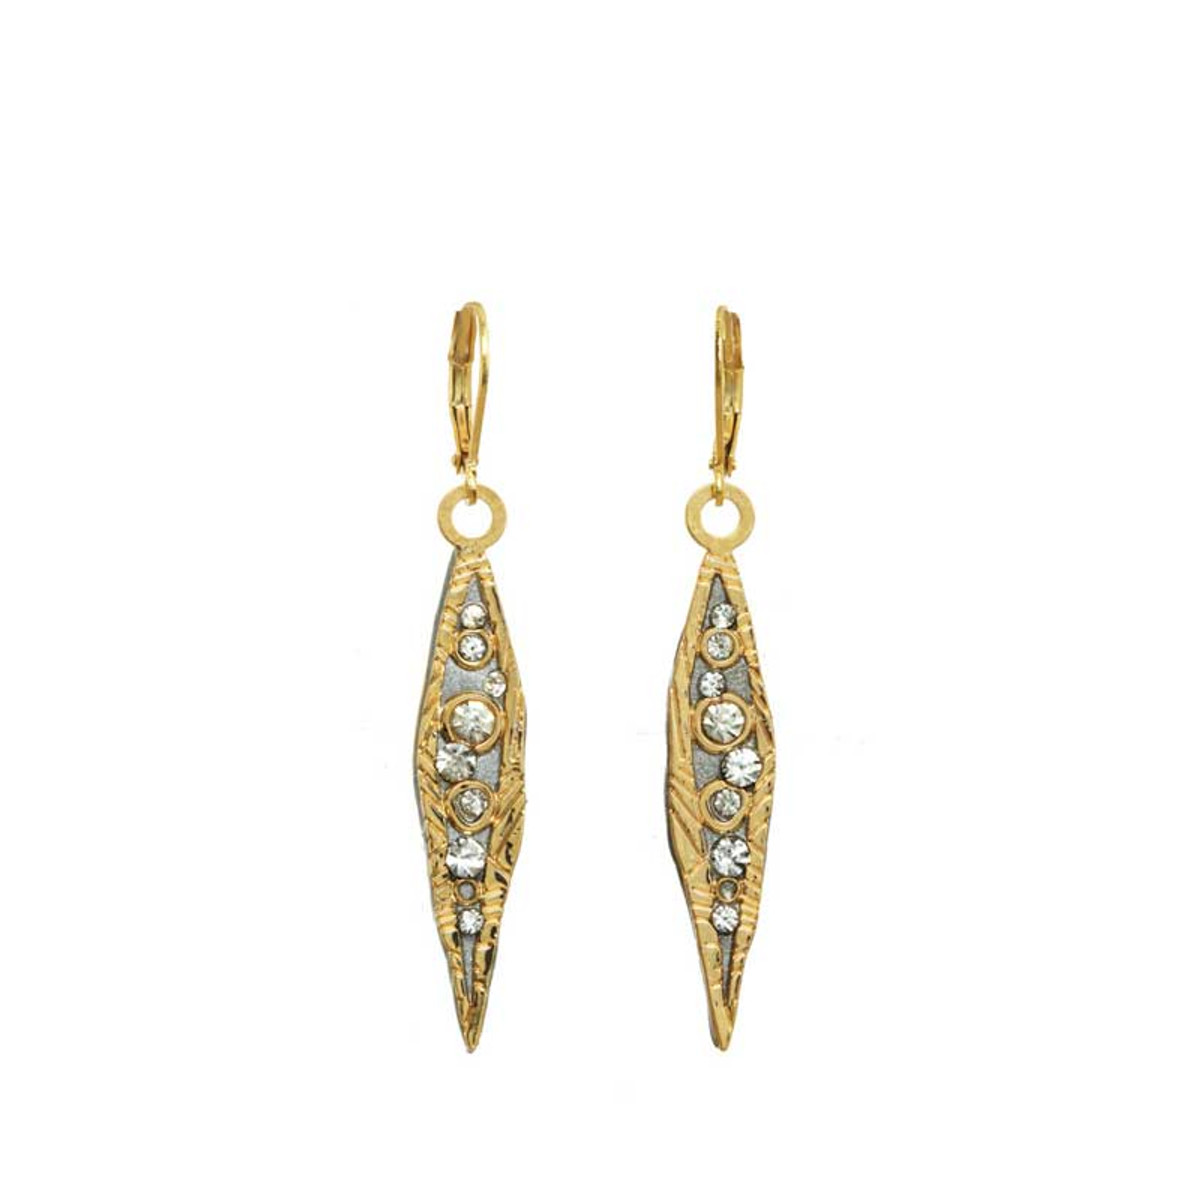 Gold Michal Golan Jewelry Icicle Earrings